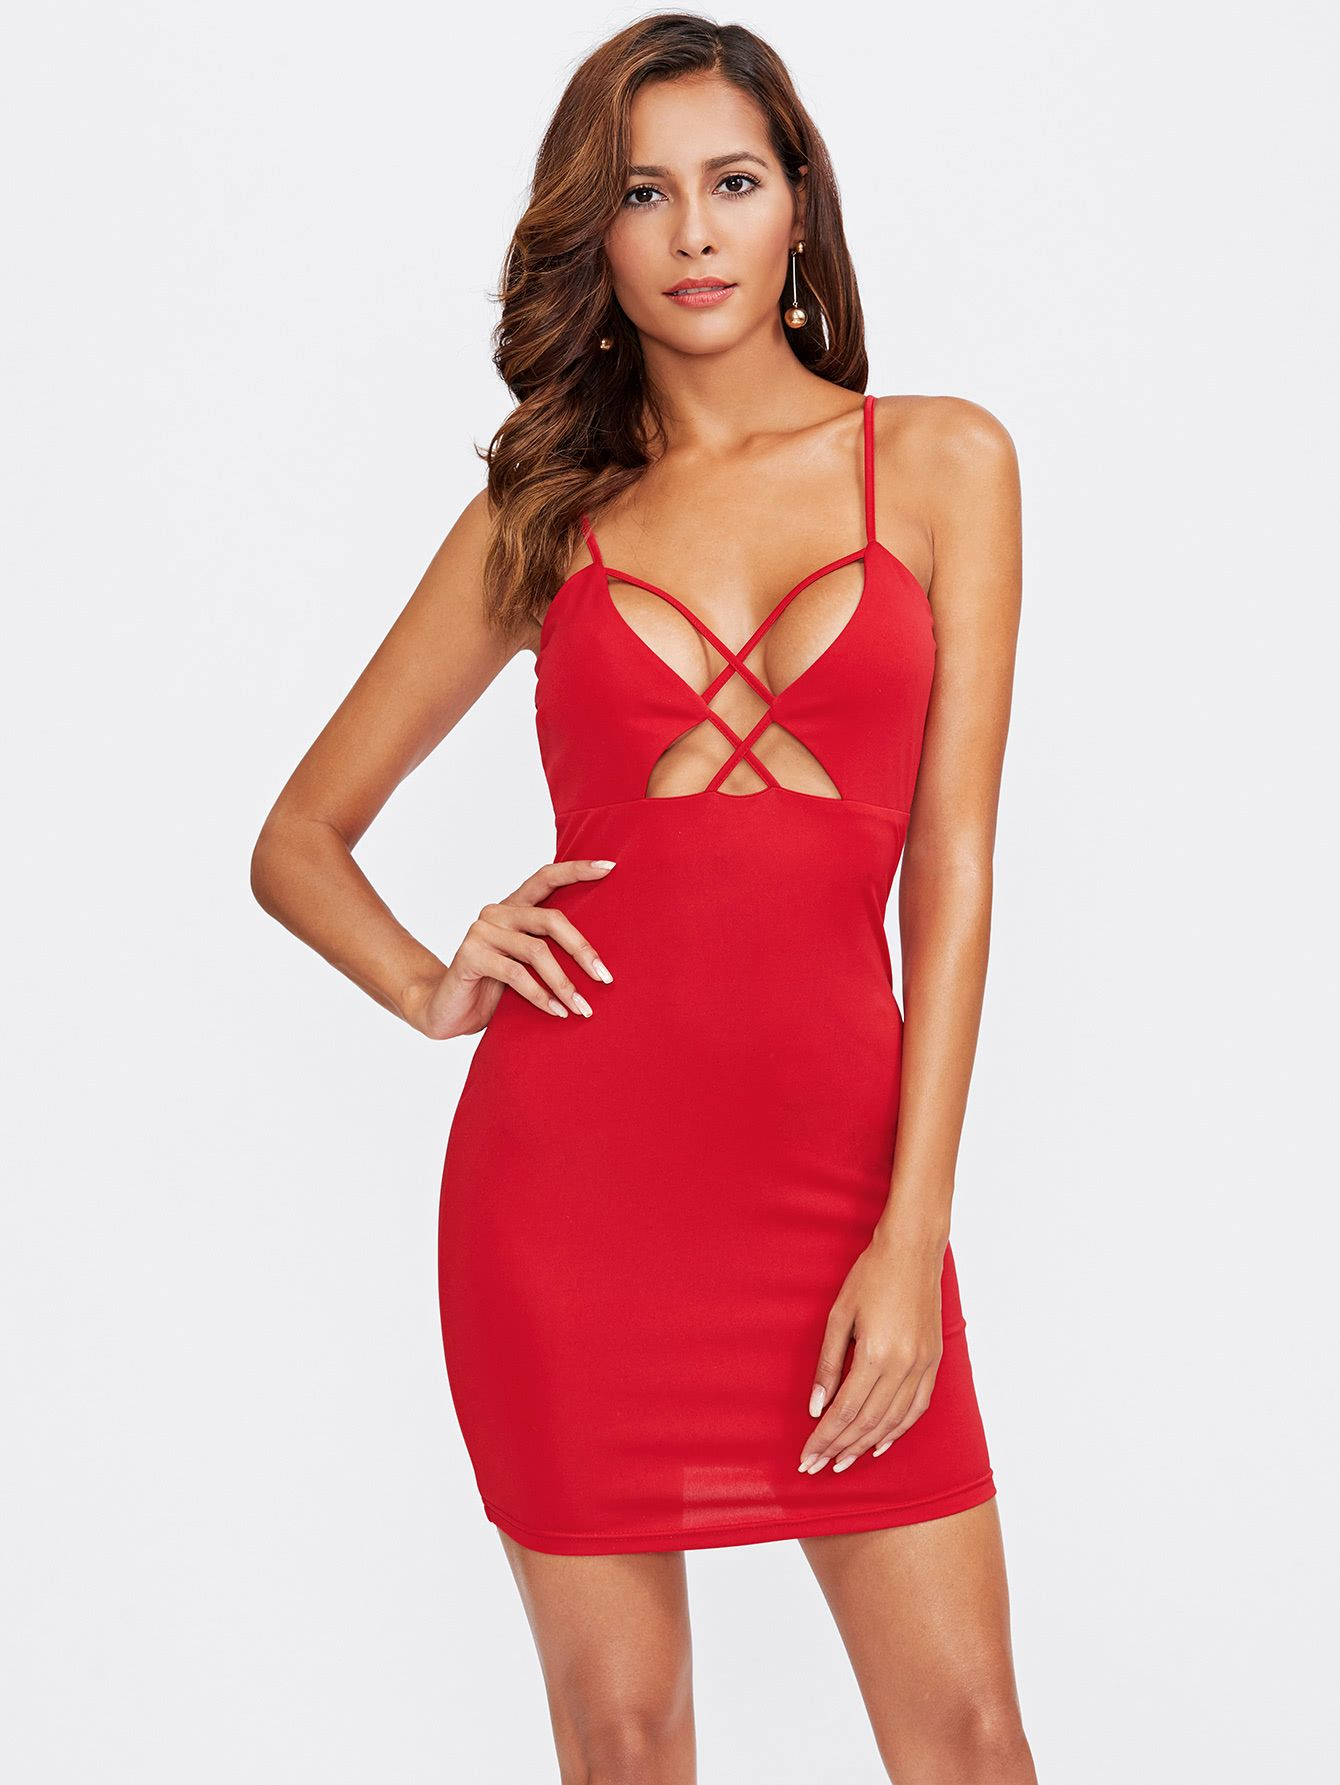 Shop Caged Front Plunging Cami Dress Online Shein Offers Caged Front Plunging Cami Dress Amp More To Fit Your Fashio Bodycon Dress Bright Fashion Cami Dress